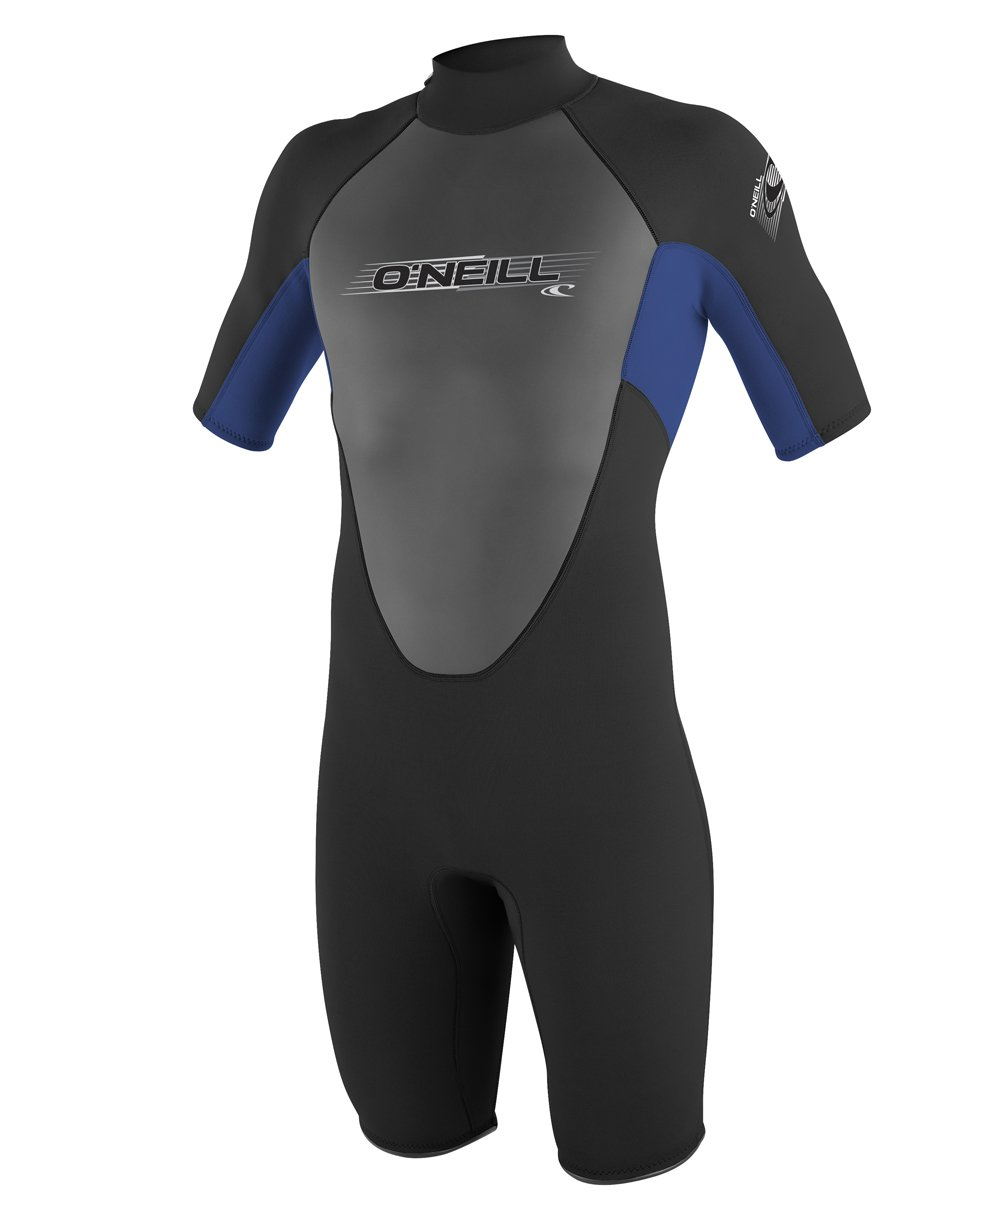 O'Neill Youth Reactor 2mm Back Zip Spring Wetsuit, Black/Pacific/Black, 4 by O'Neill Wetsuits